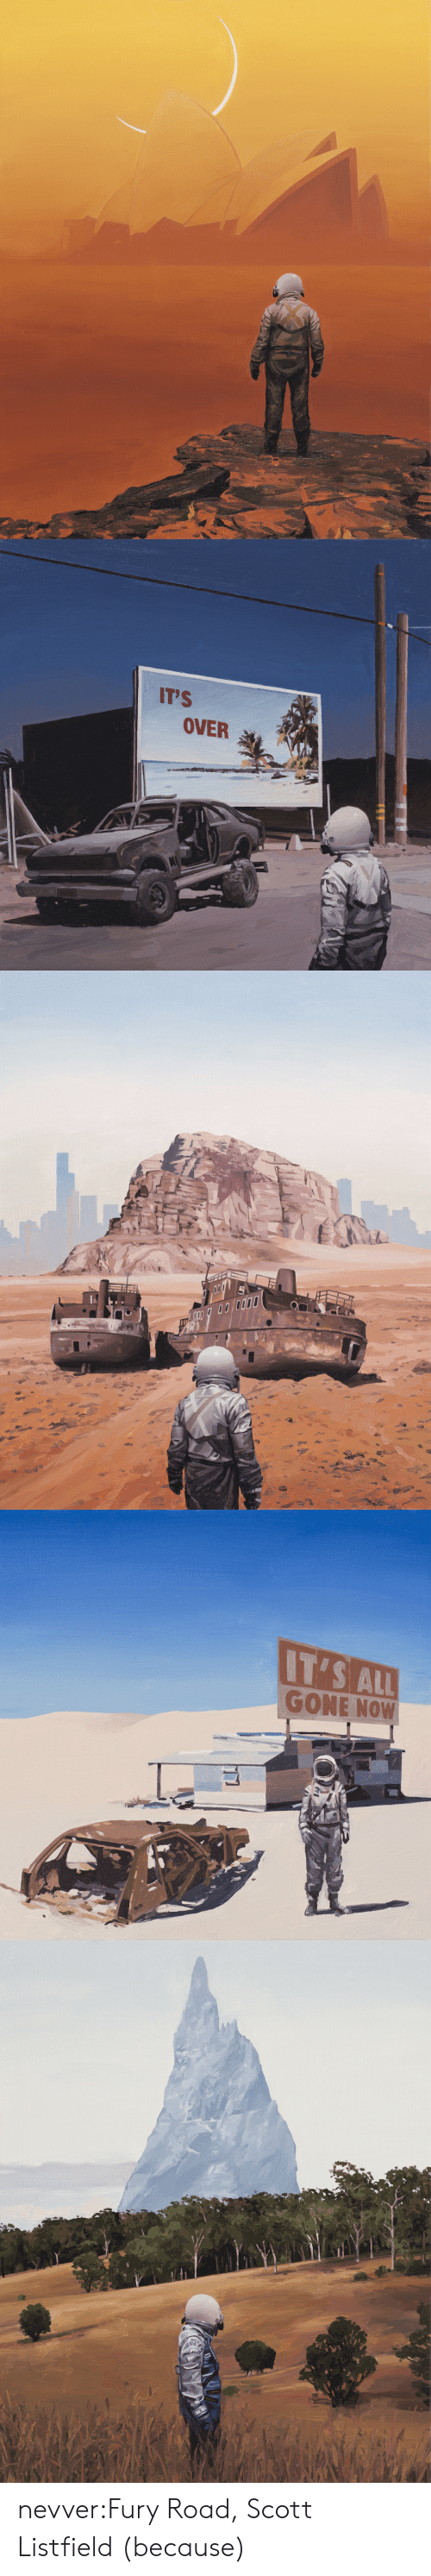 Tumblr, Blog, and Fury: IT'S  OVER   IT'S ALL  GONE NOW nevver:Fury Road, Scott Listfield (because)